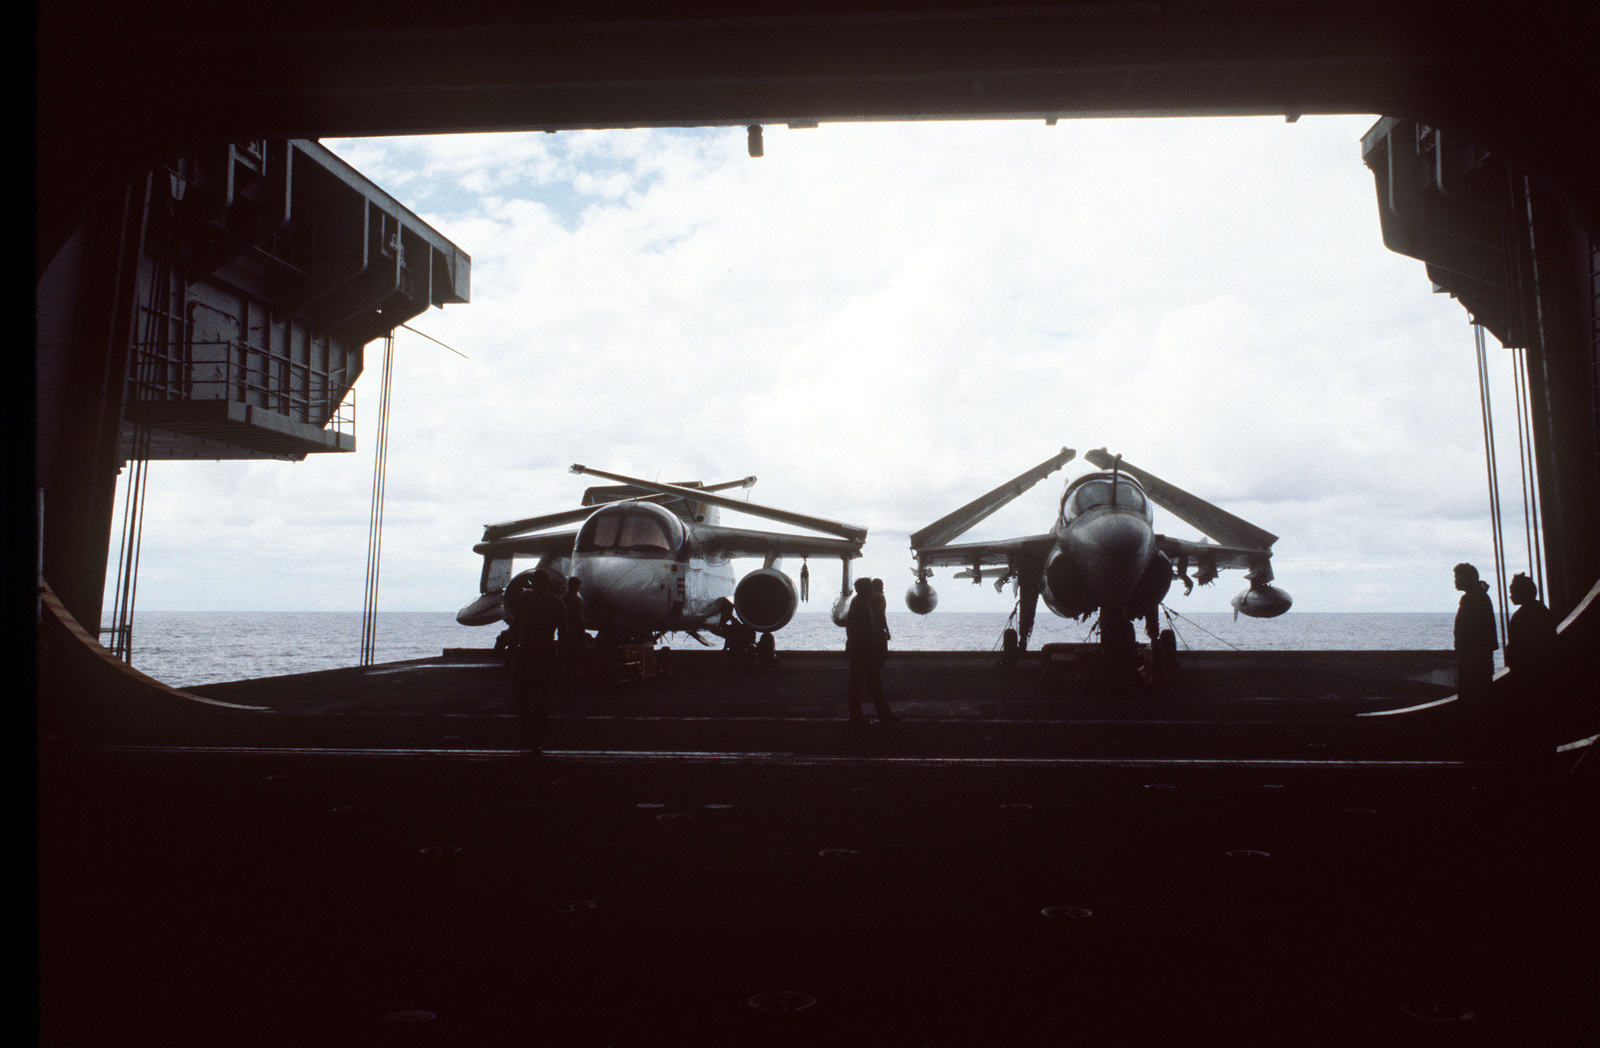 An S-3A Viking aircraft (left) and A-6E Intruder aircraft are parked on a lowered elevator aboard the aircraft carrier USS CONSTELLATION (CV 64) during Fleet Exercise 85